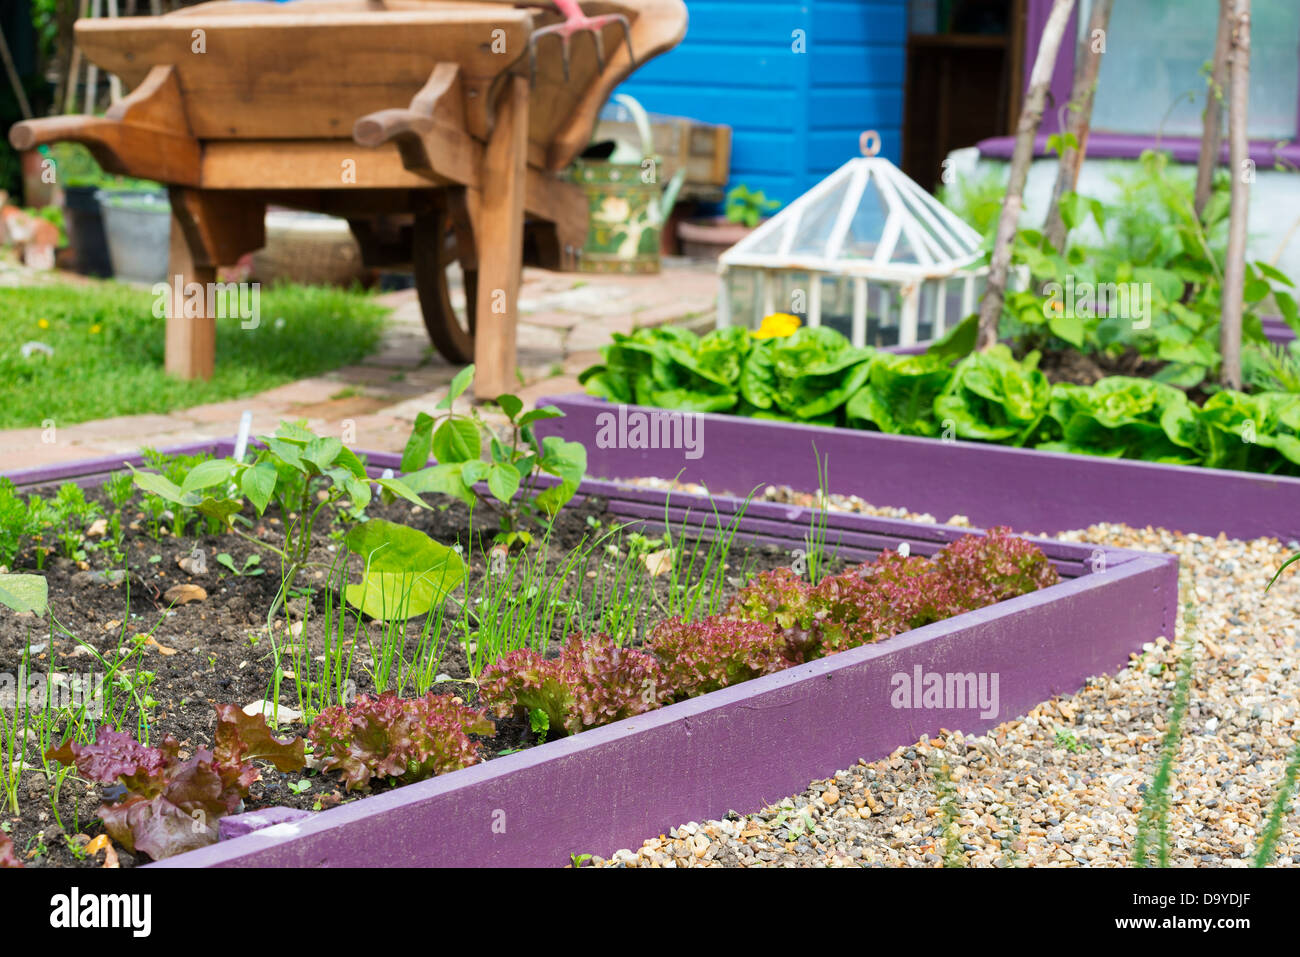 Early Summer Garden With Brightly Painted Raised Beds With Shingle Stock Photo Alamy